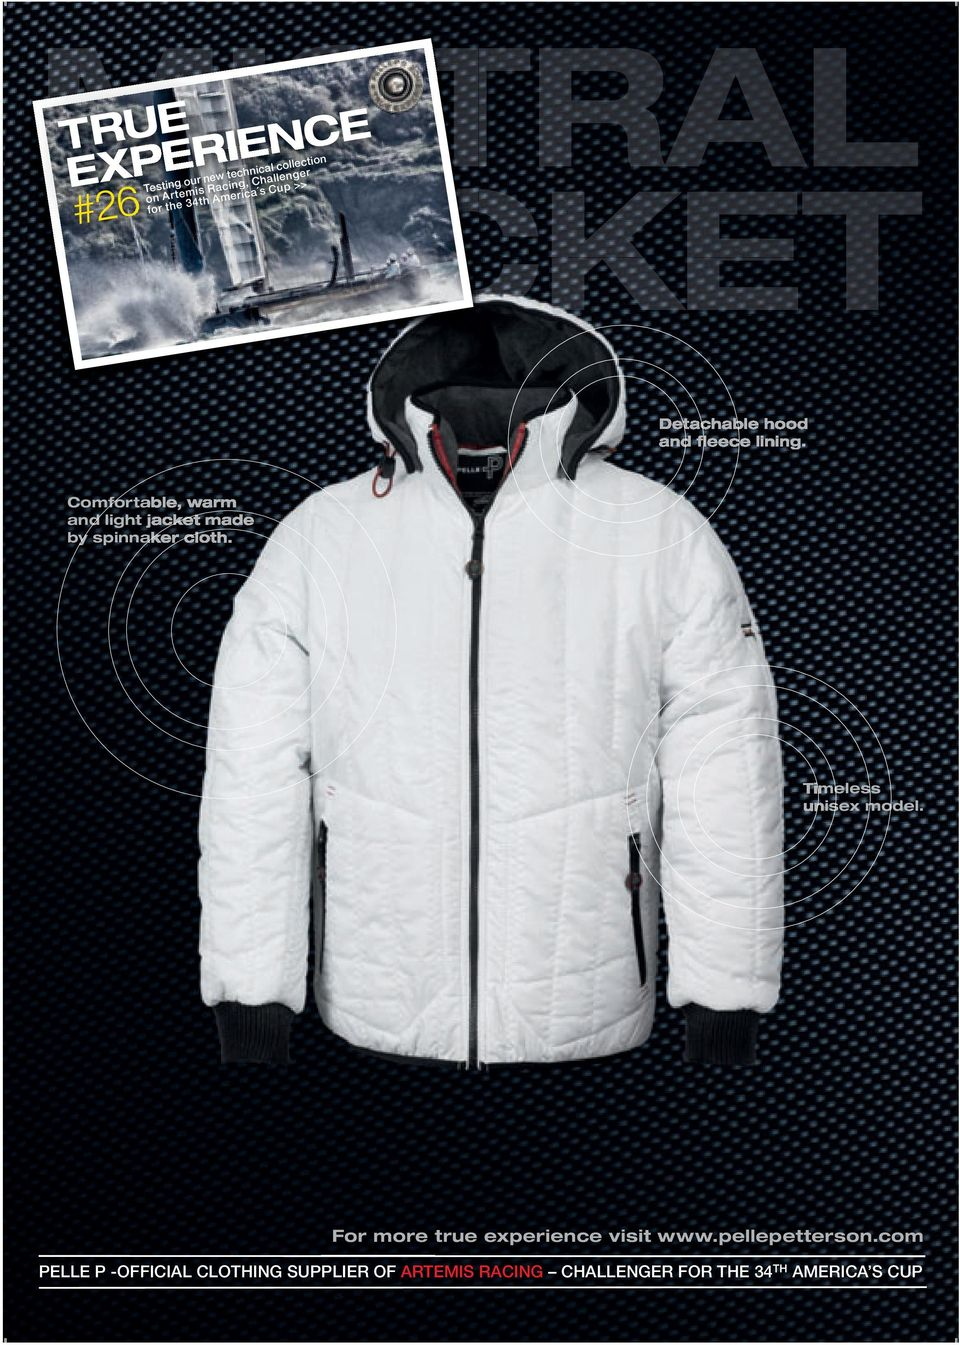 Comfortable, warm and light jacket made by spinnaker cloth. Timeless unisex model.